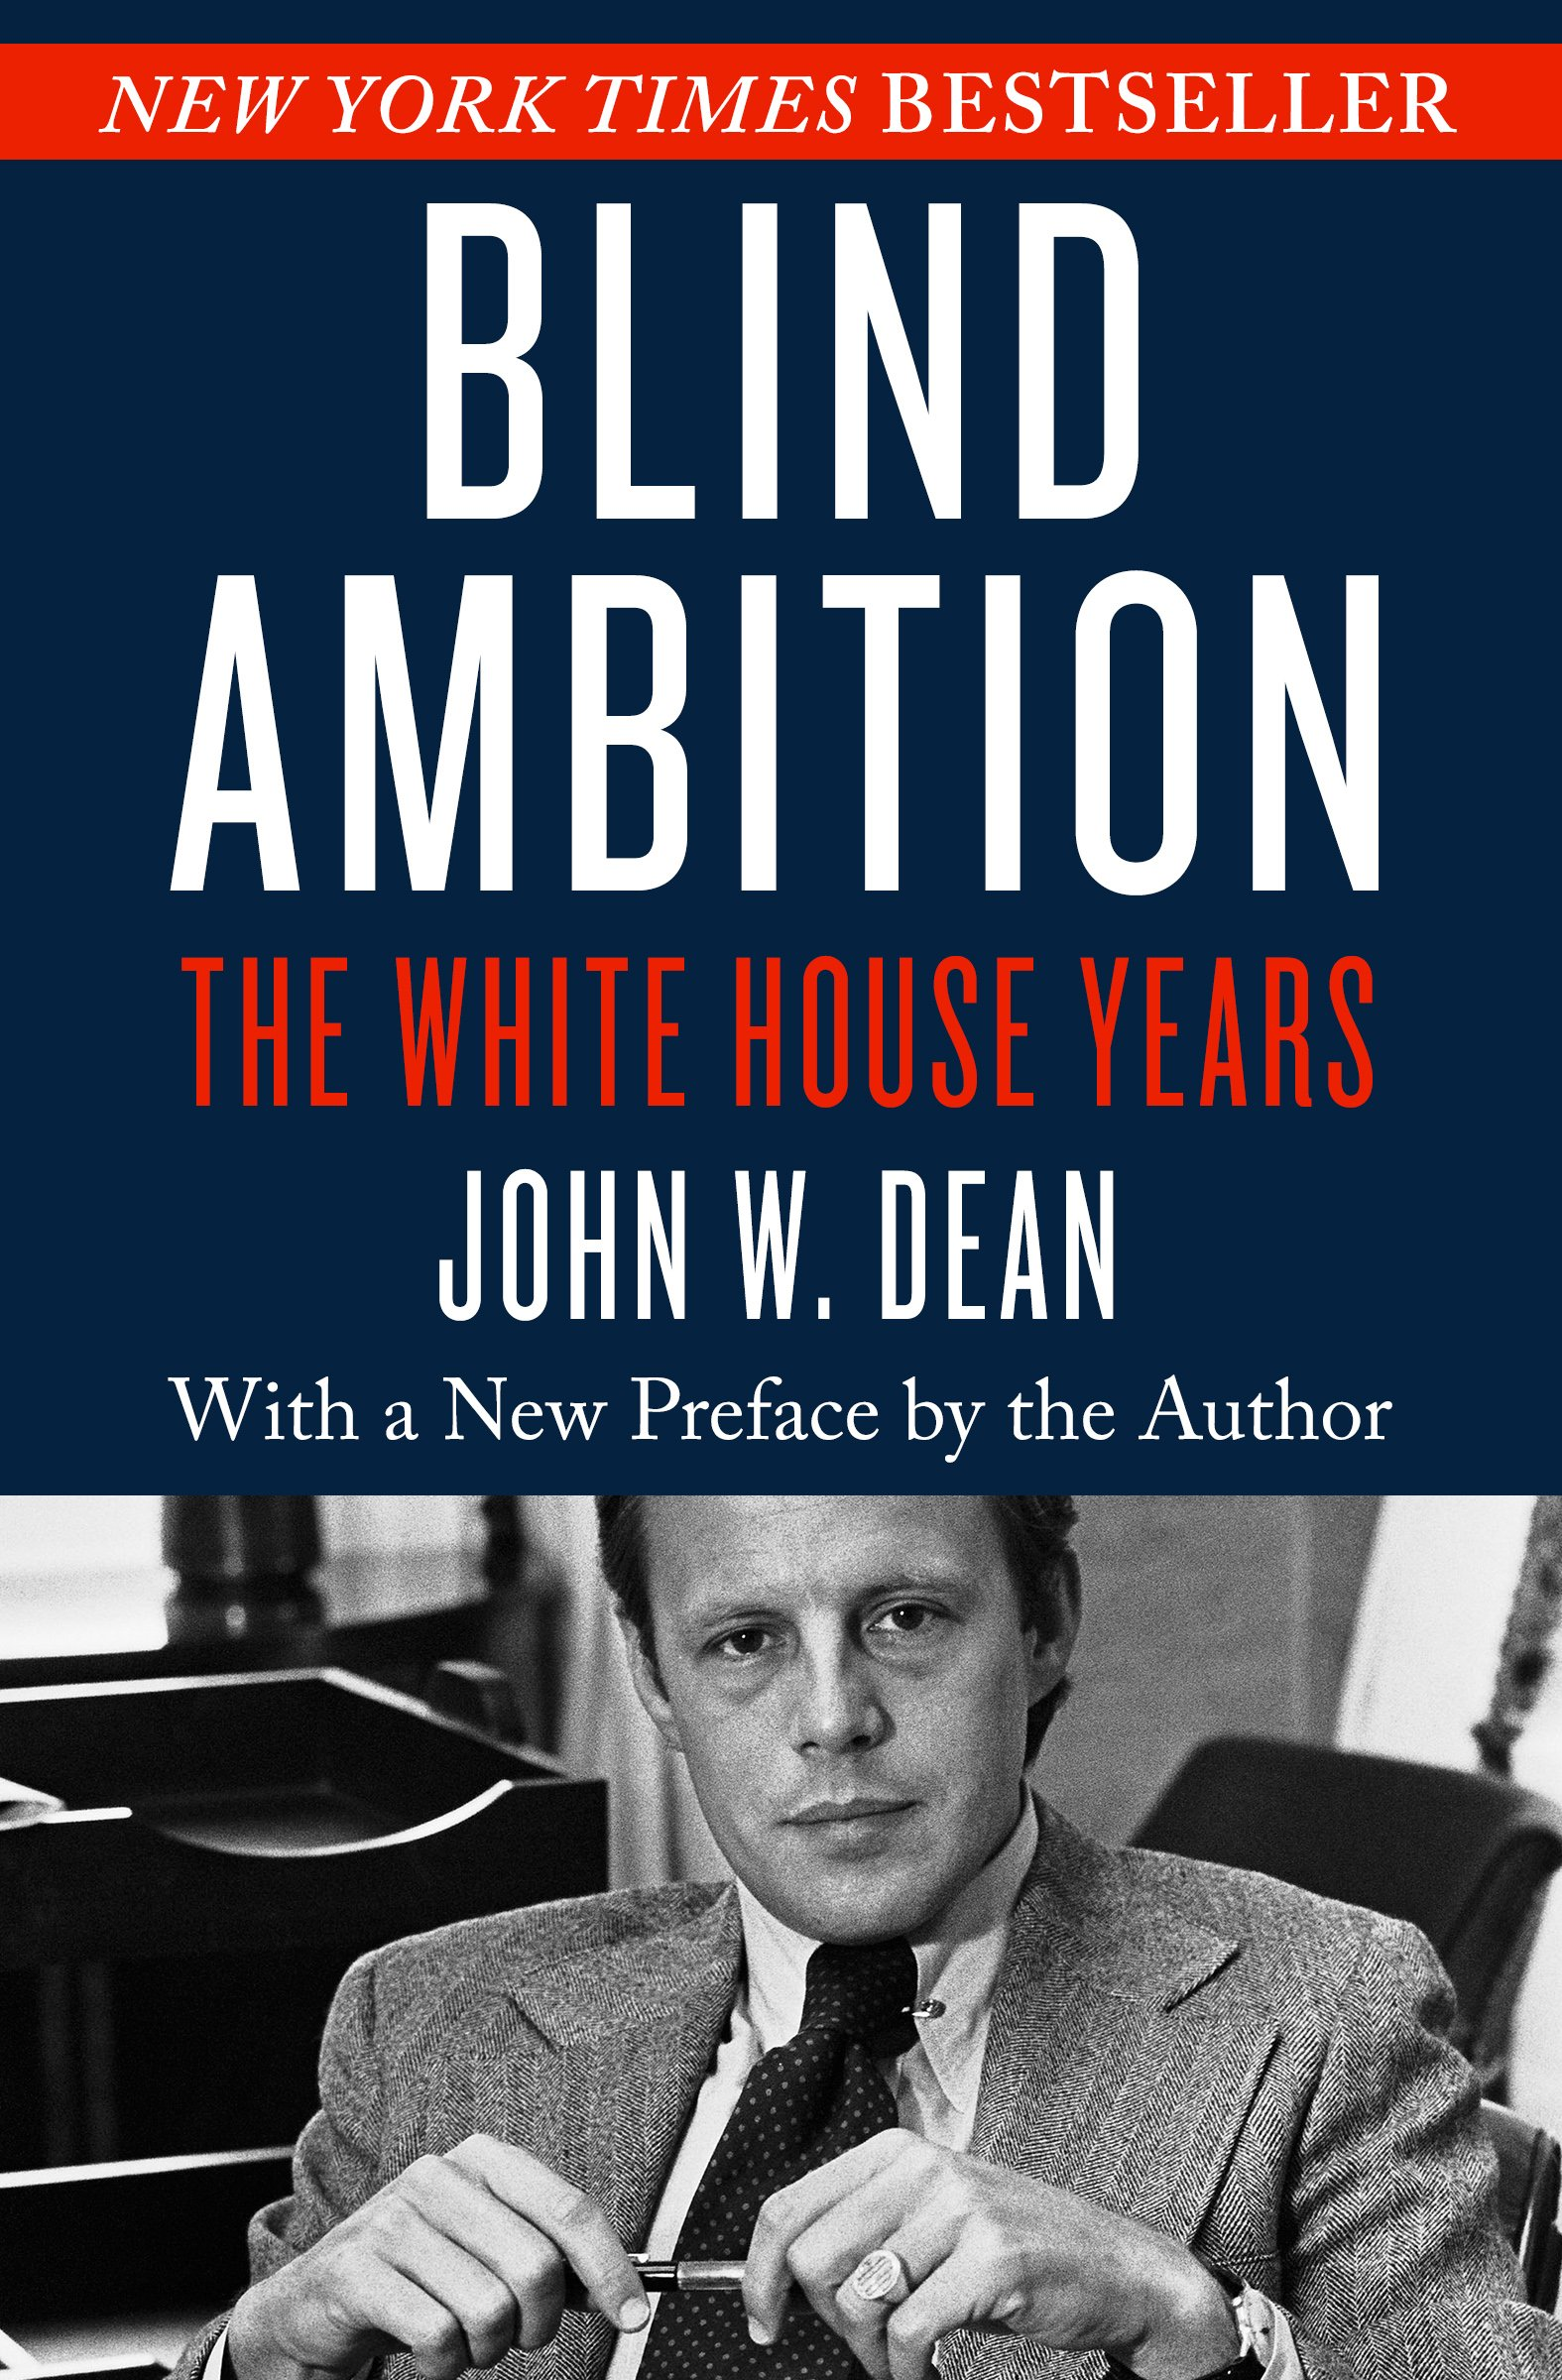 Image OfBlind Ambition: The White House Years